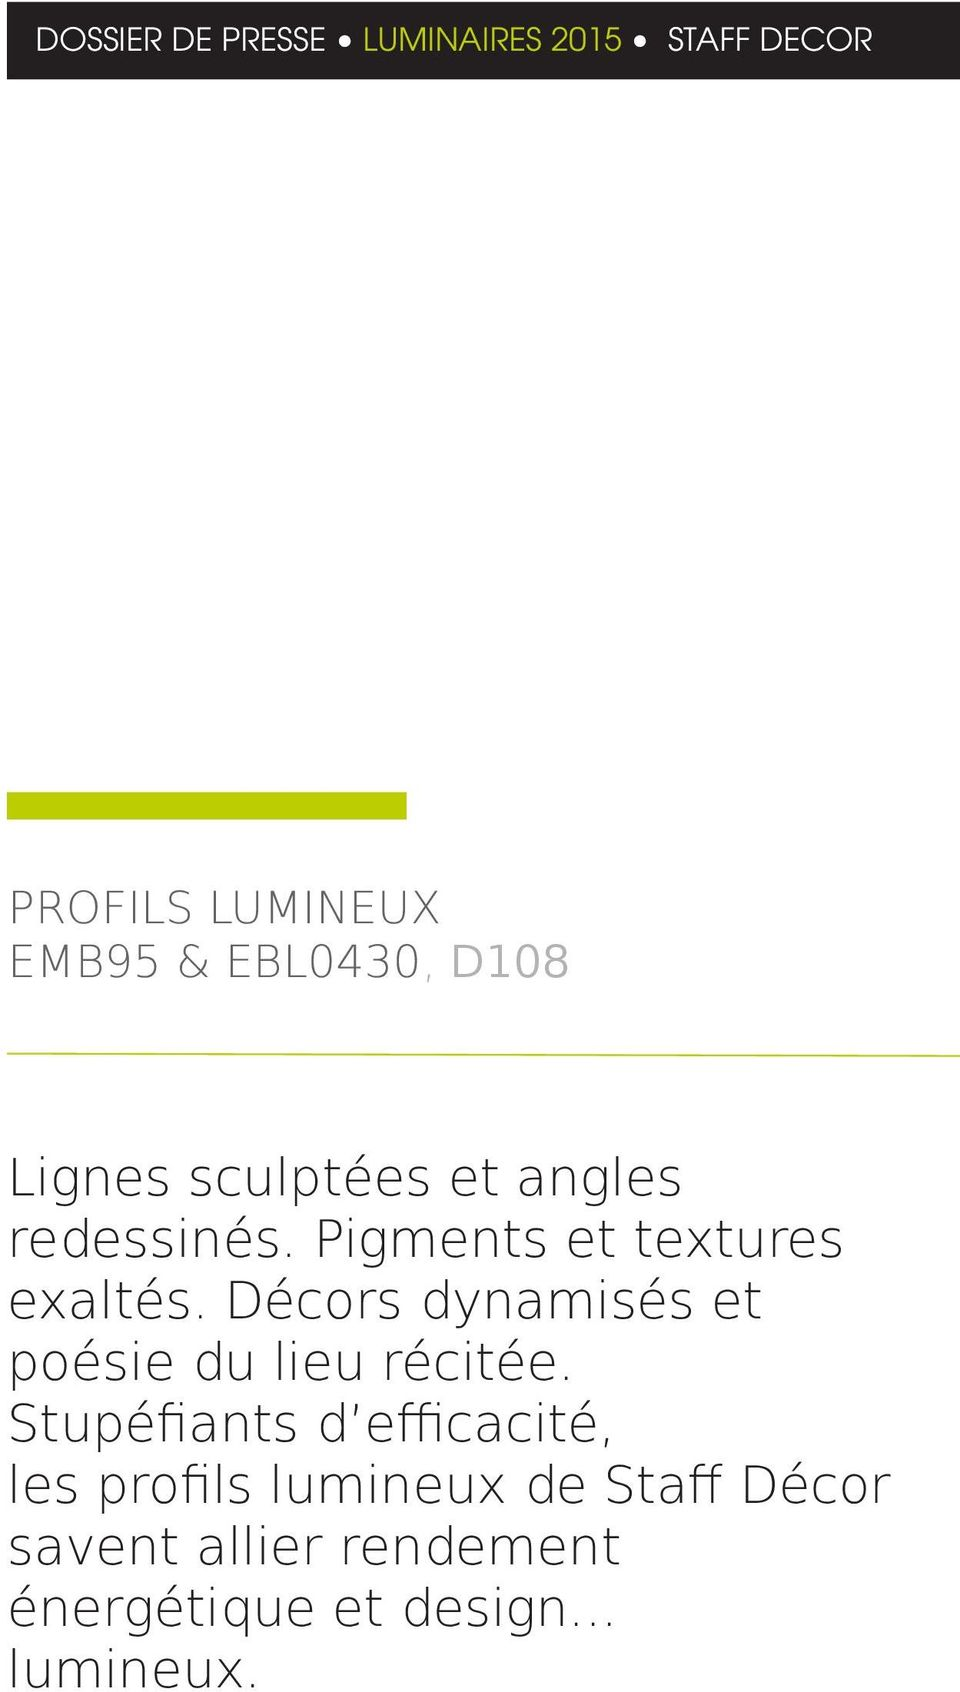 Presse Catalogue Luminaires Decor Pdf De Staff Dossier ...